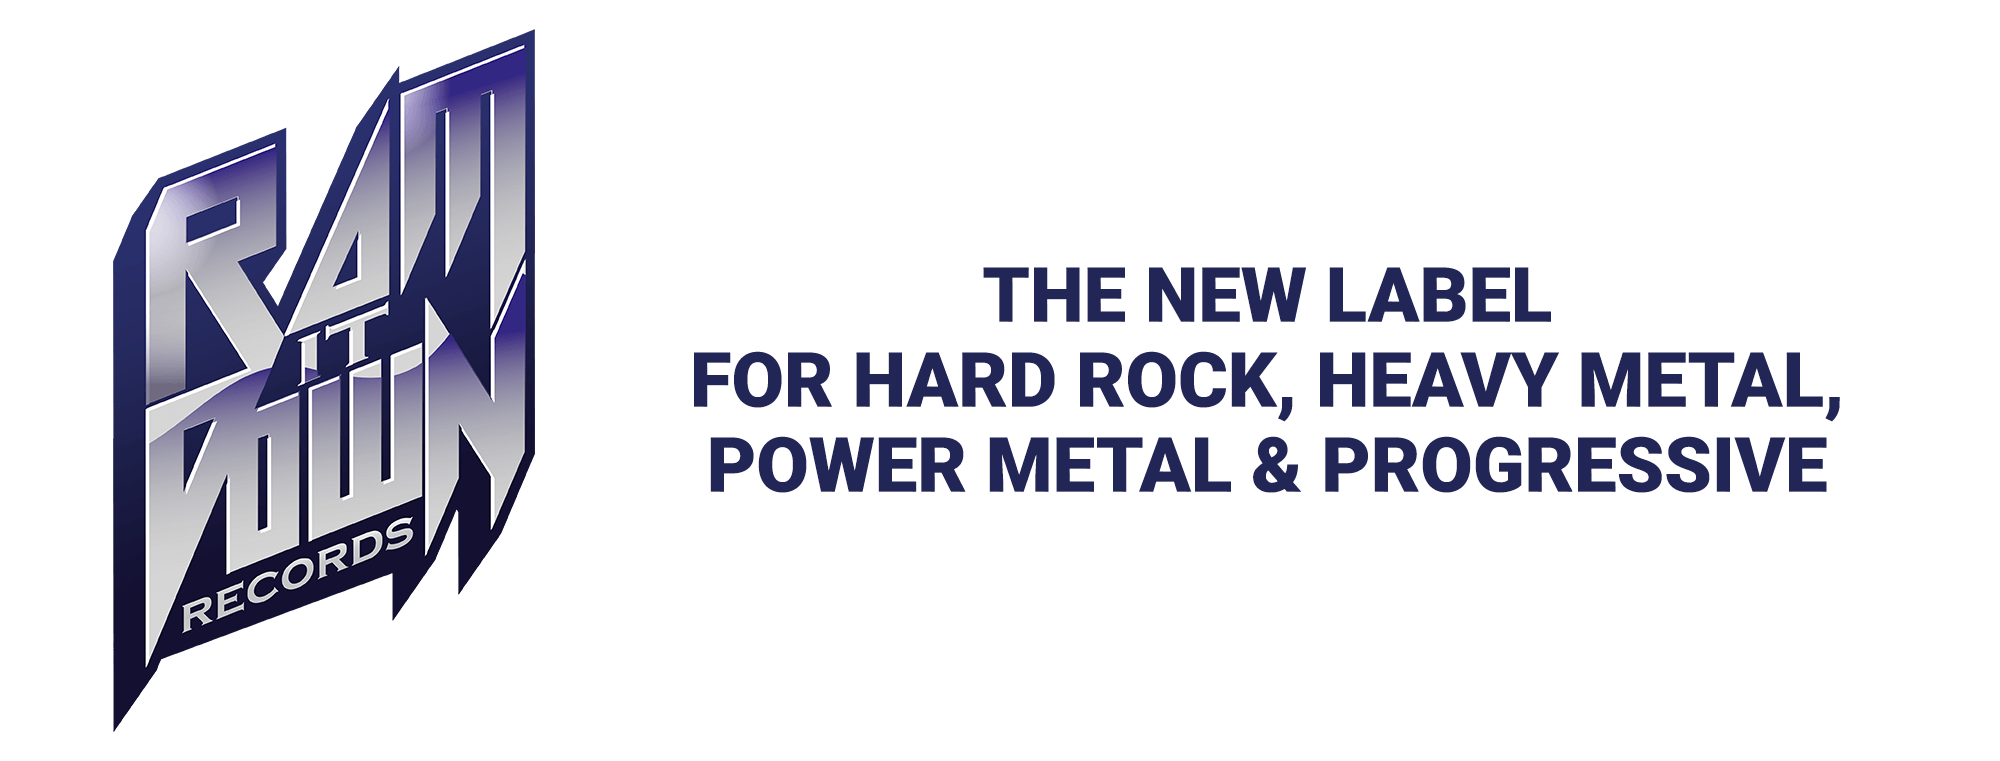 Ram It Down Records - The new label for hard rock, heavy metal, power metal & progressive